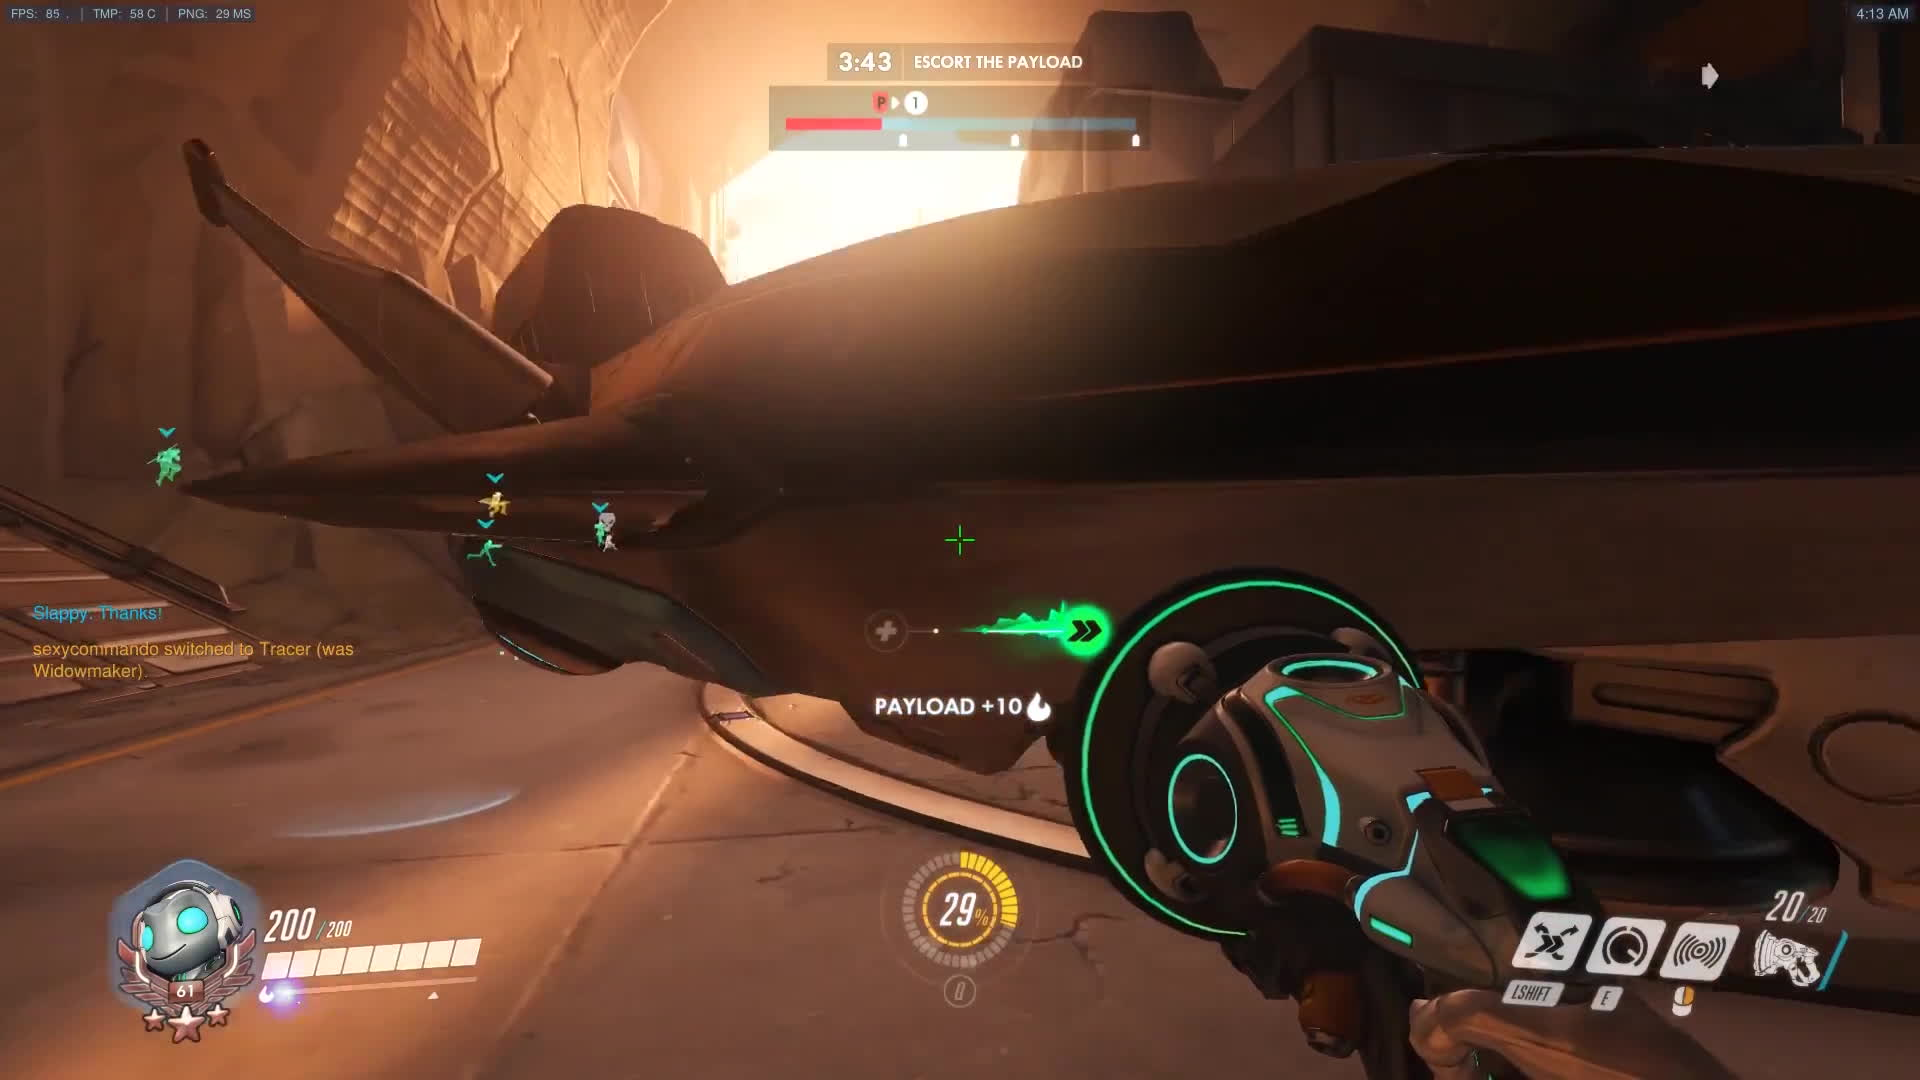 Overwatch, Payload memes GIFs